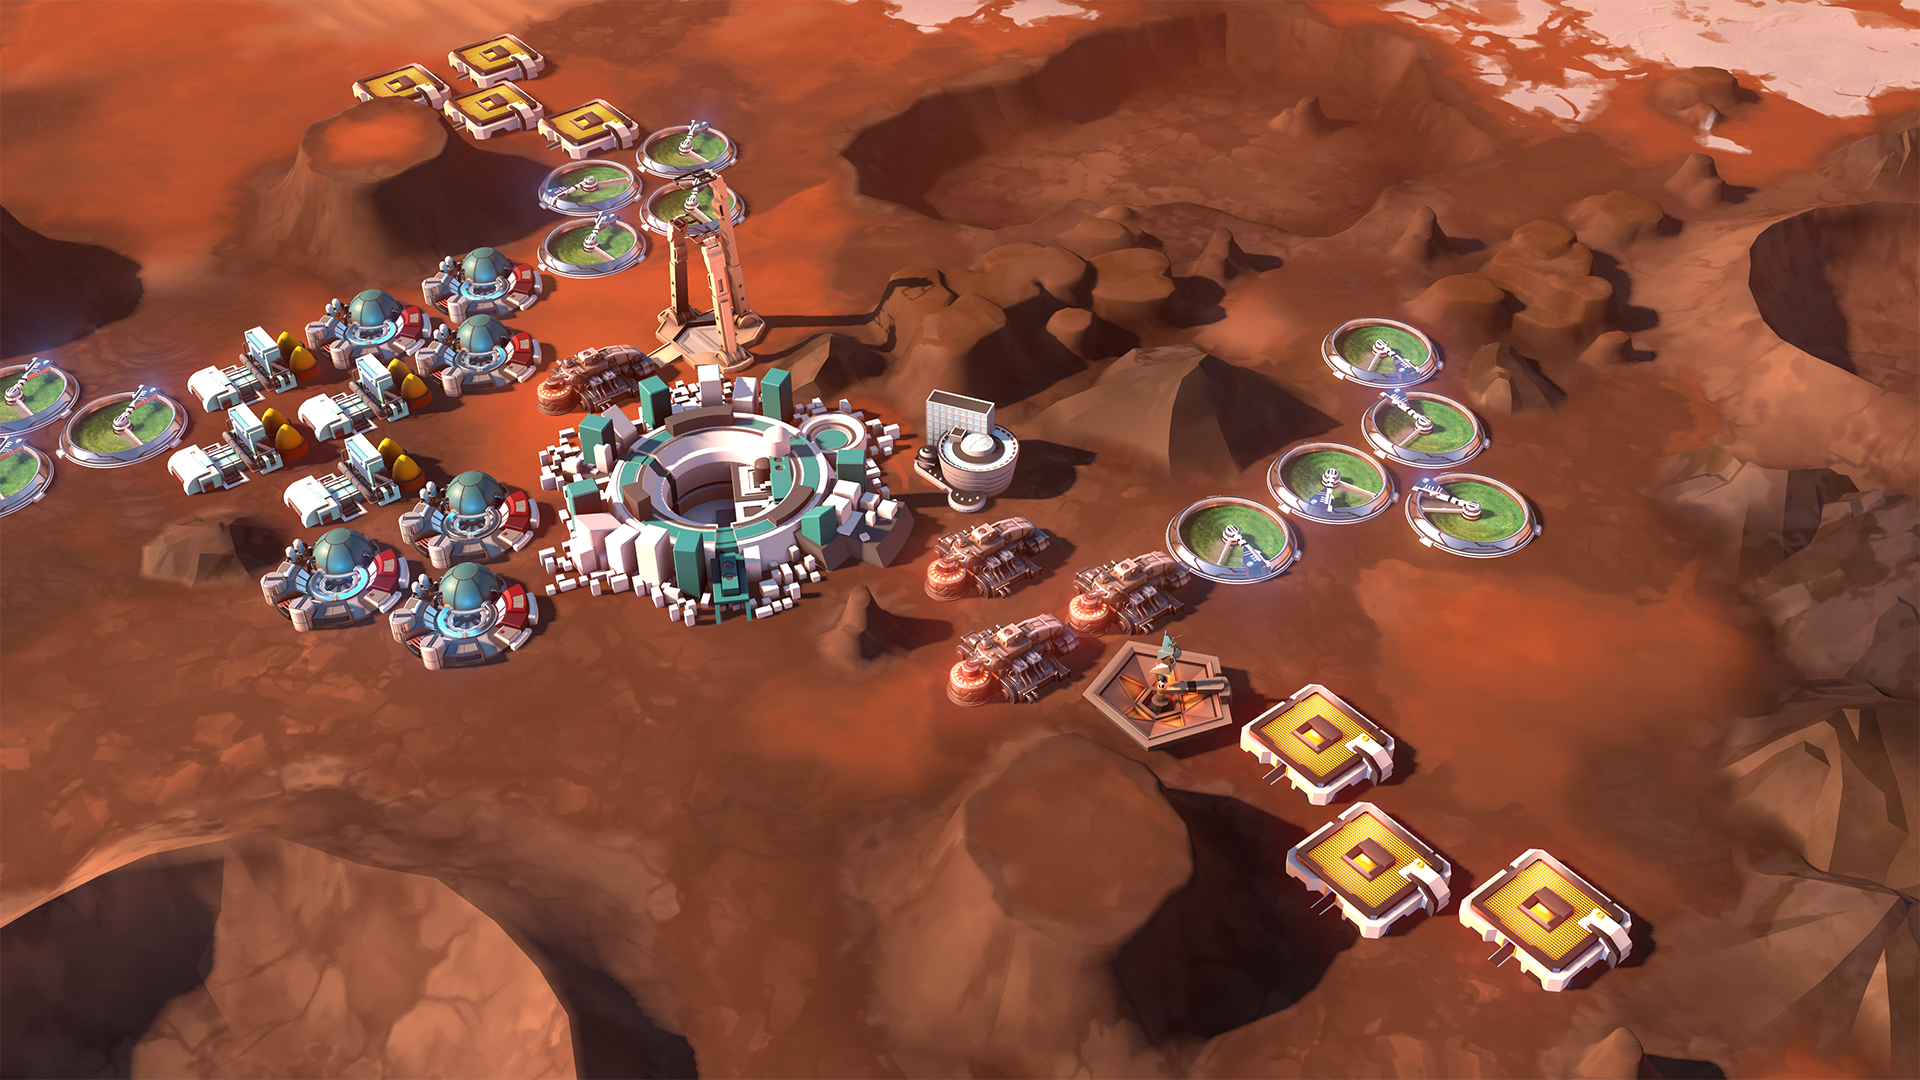 Here's Offworld Trading Company, a real-time strategy game that's trying something new